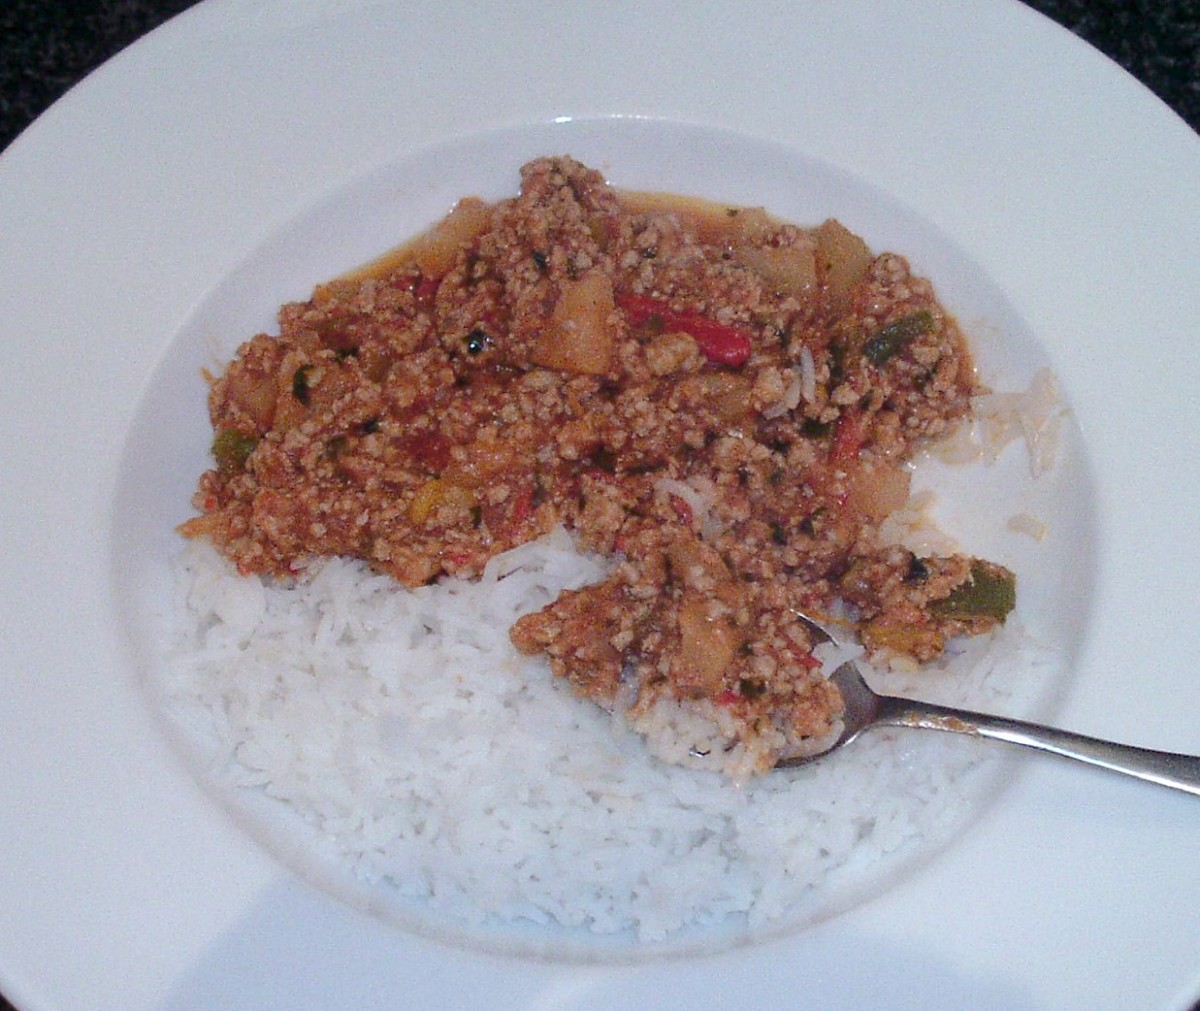 Enjoying sweet and spicy pork, peppers and pineapple with fried rice